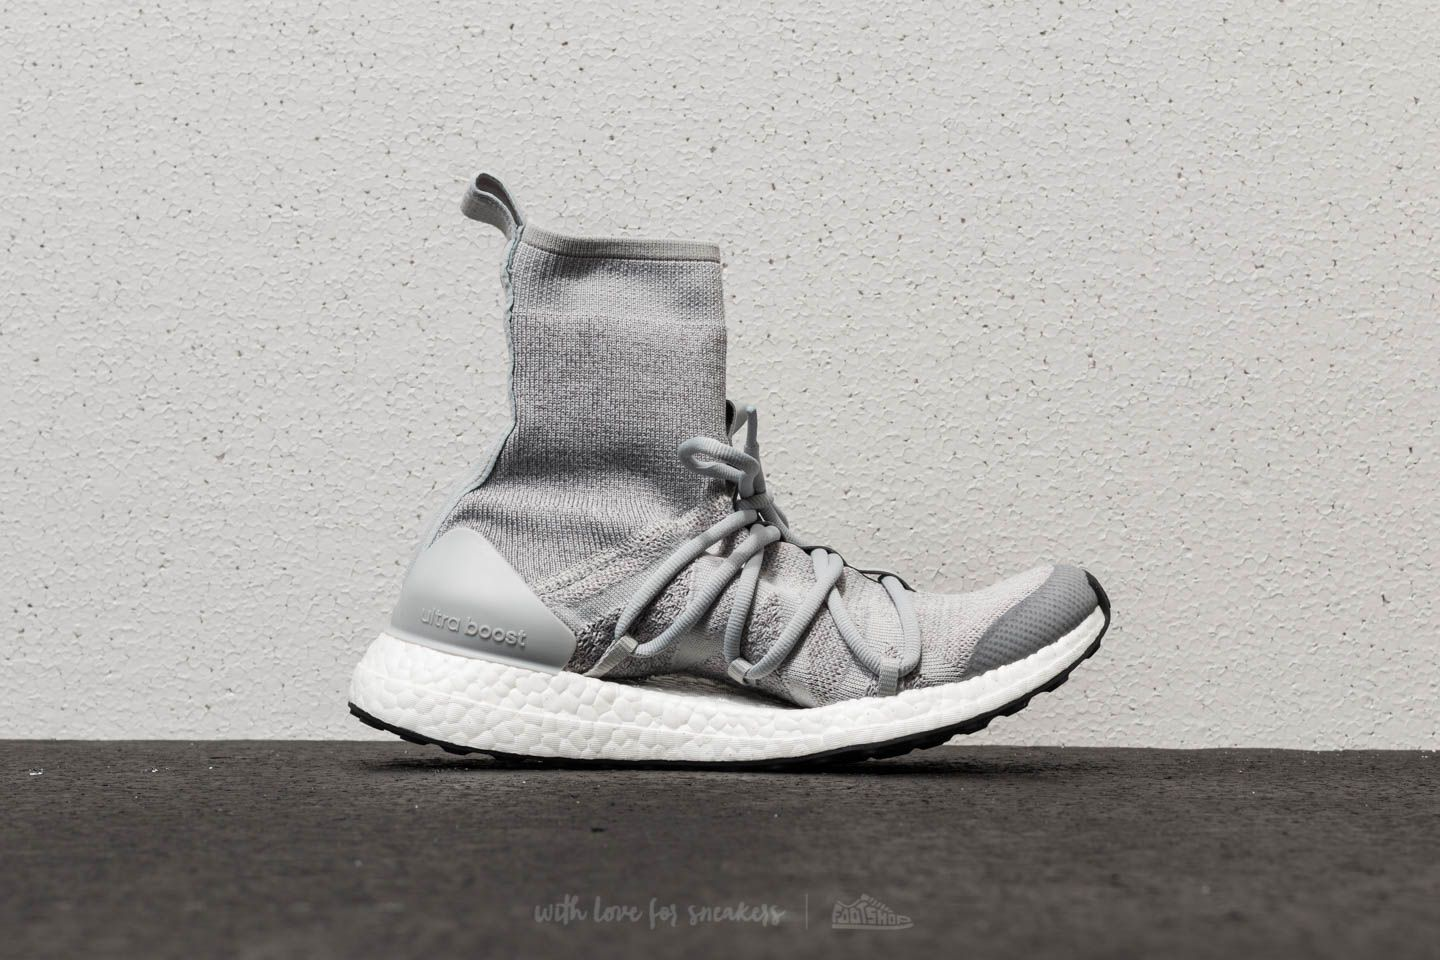 reputable site a4431 dcd46 adidas x Stella McCartney Ultraboost X Mid Stone Core White Eggshell Grey  at a